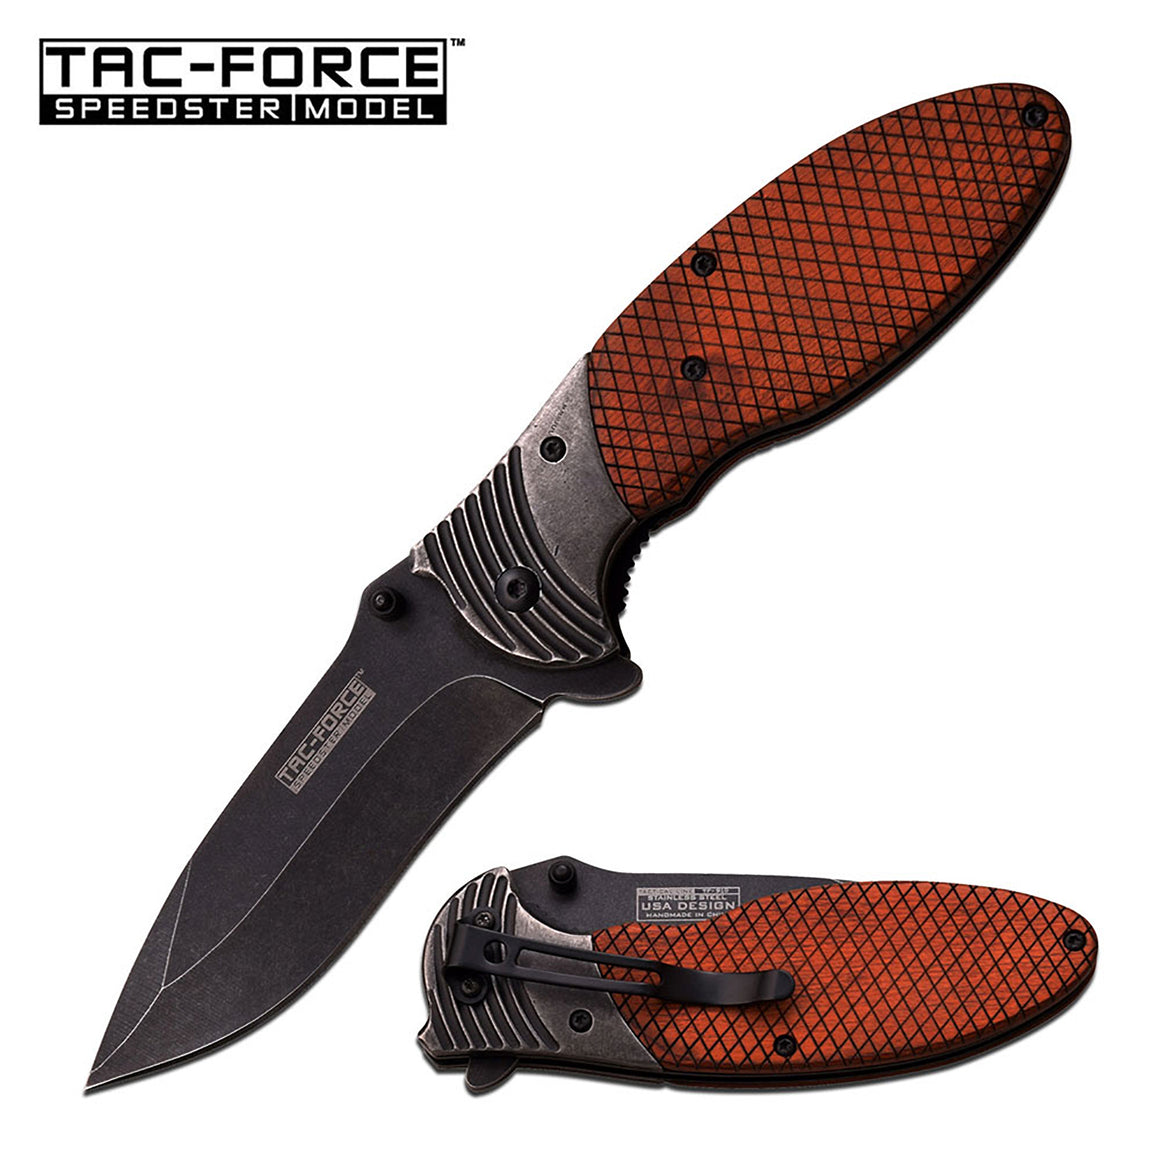 Tac-Force TF-910WD Spring Assisted Knife